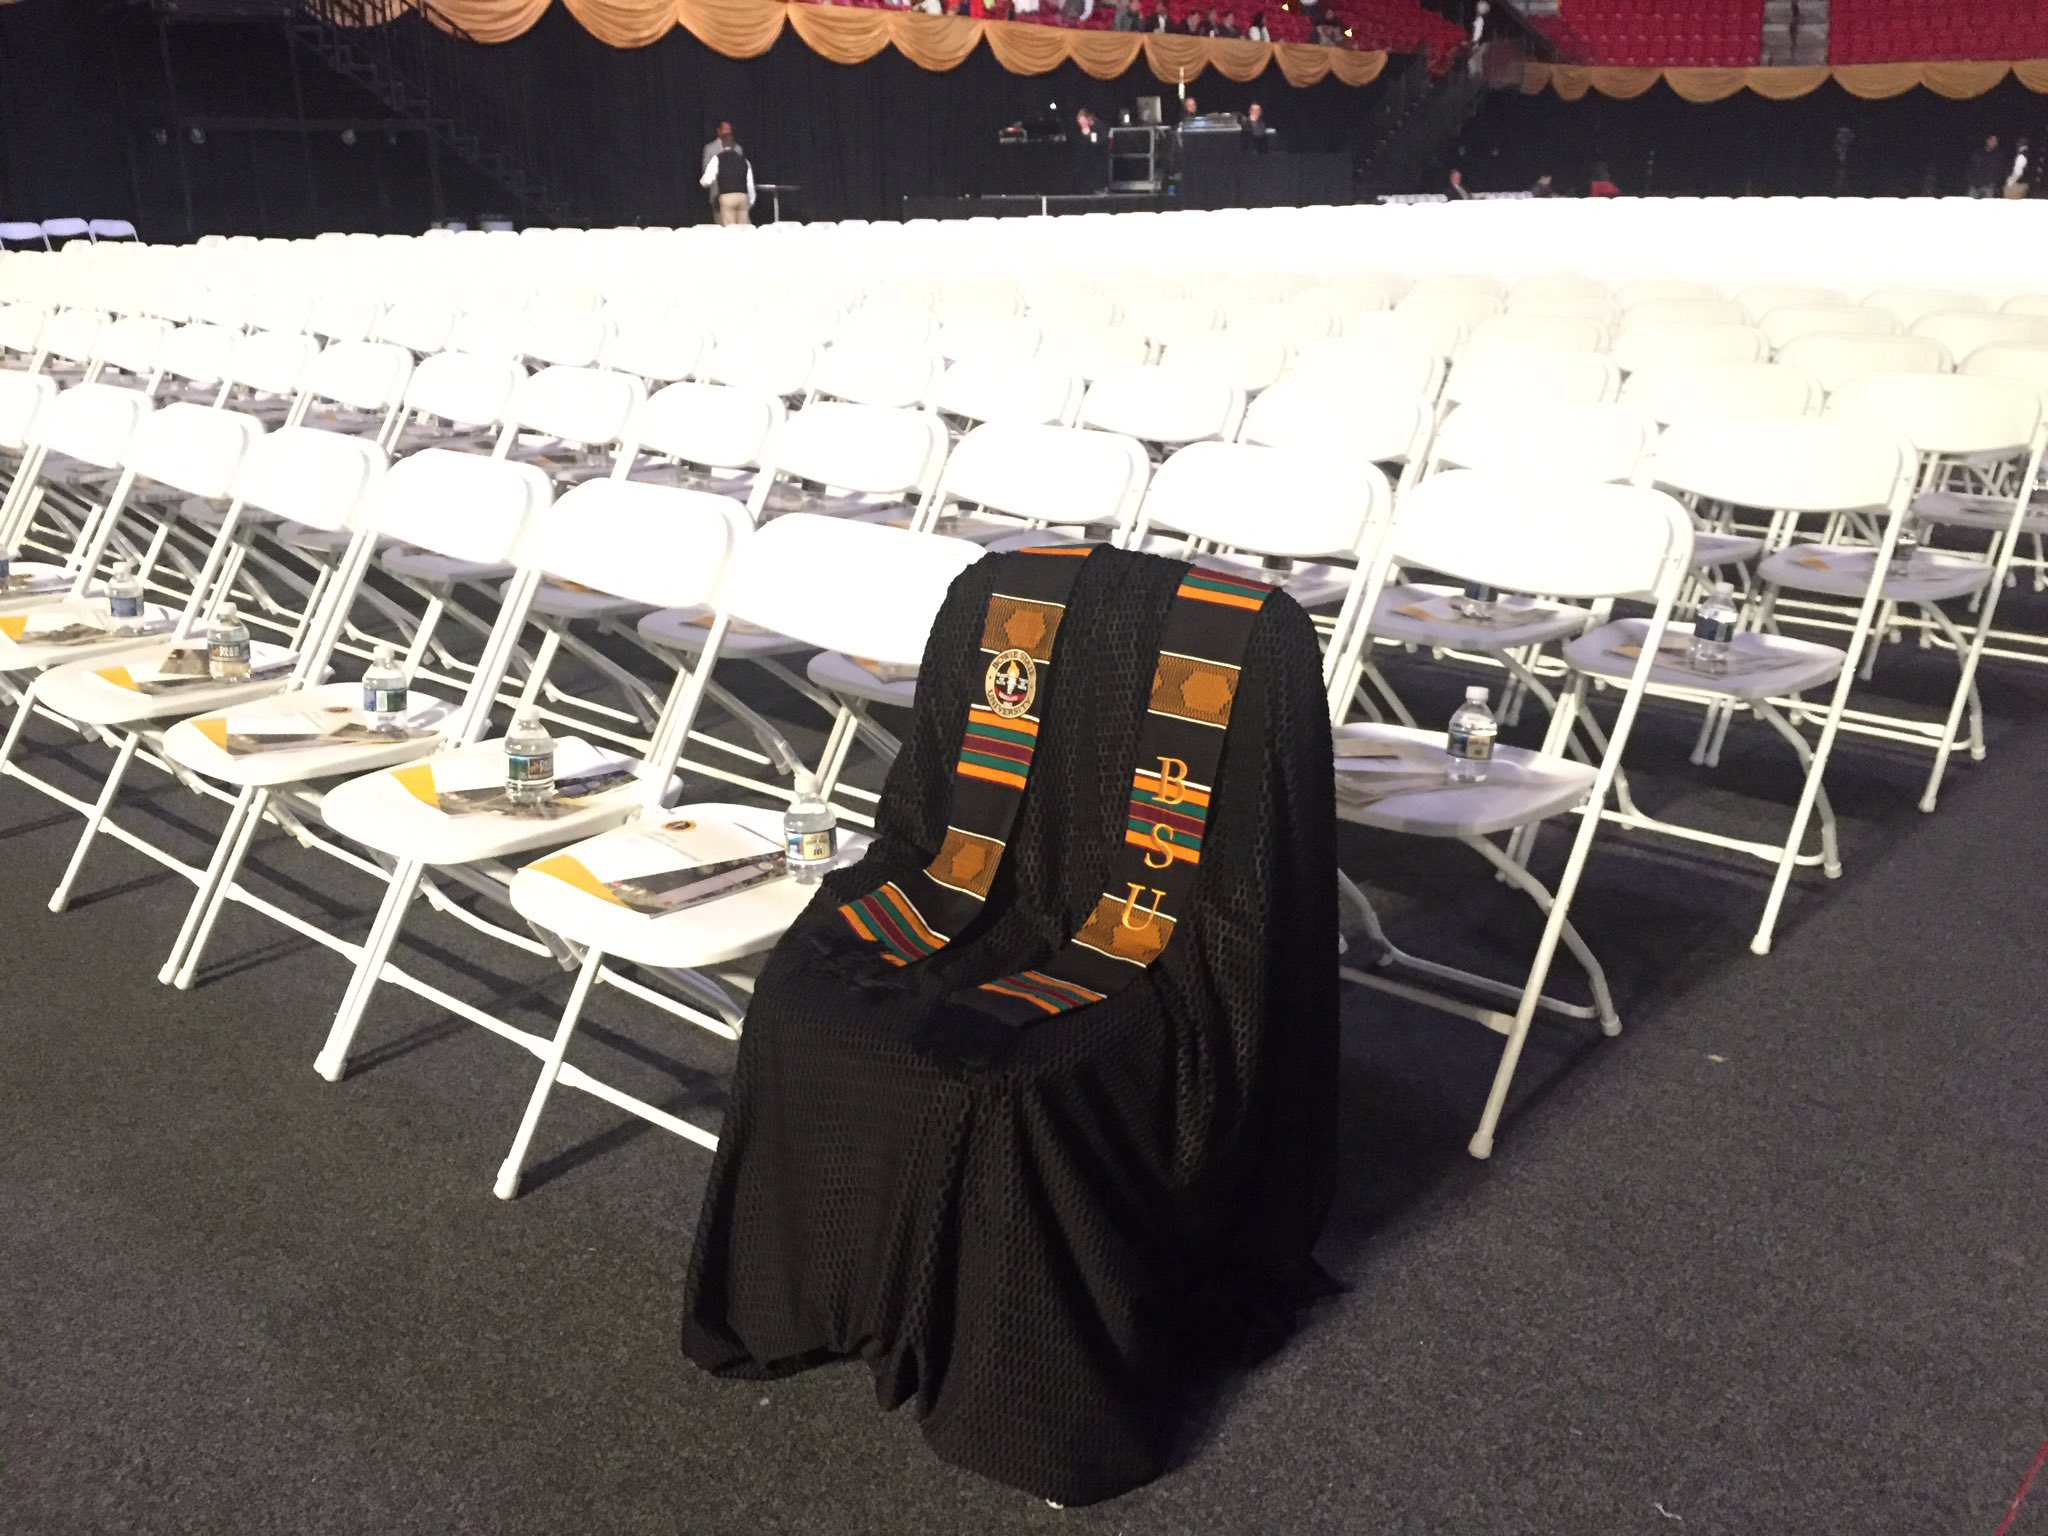 Slain Maryland Student Honored at Commencement Ceremony